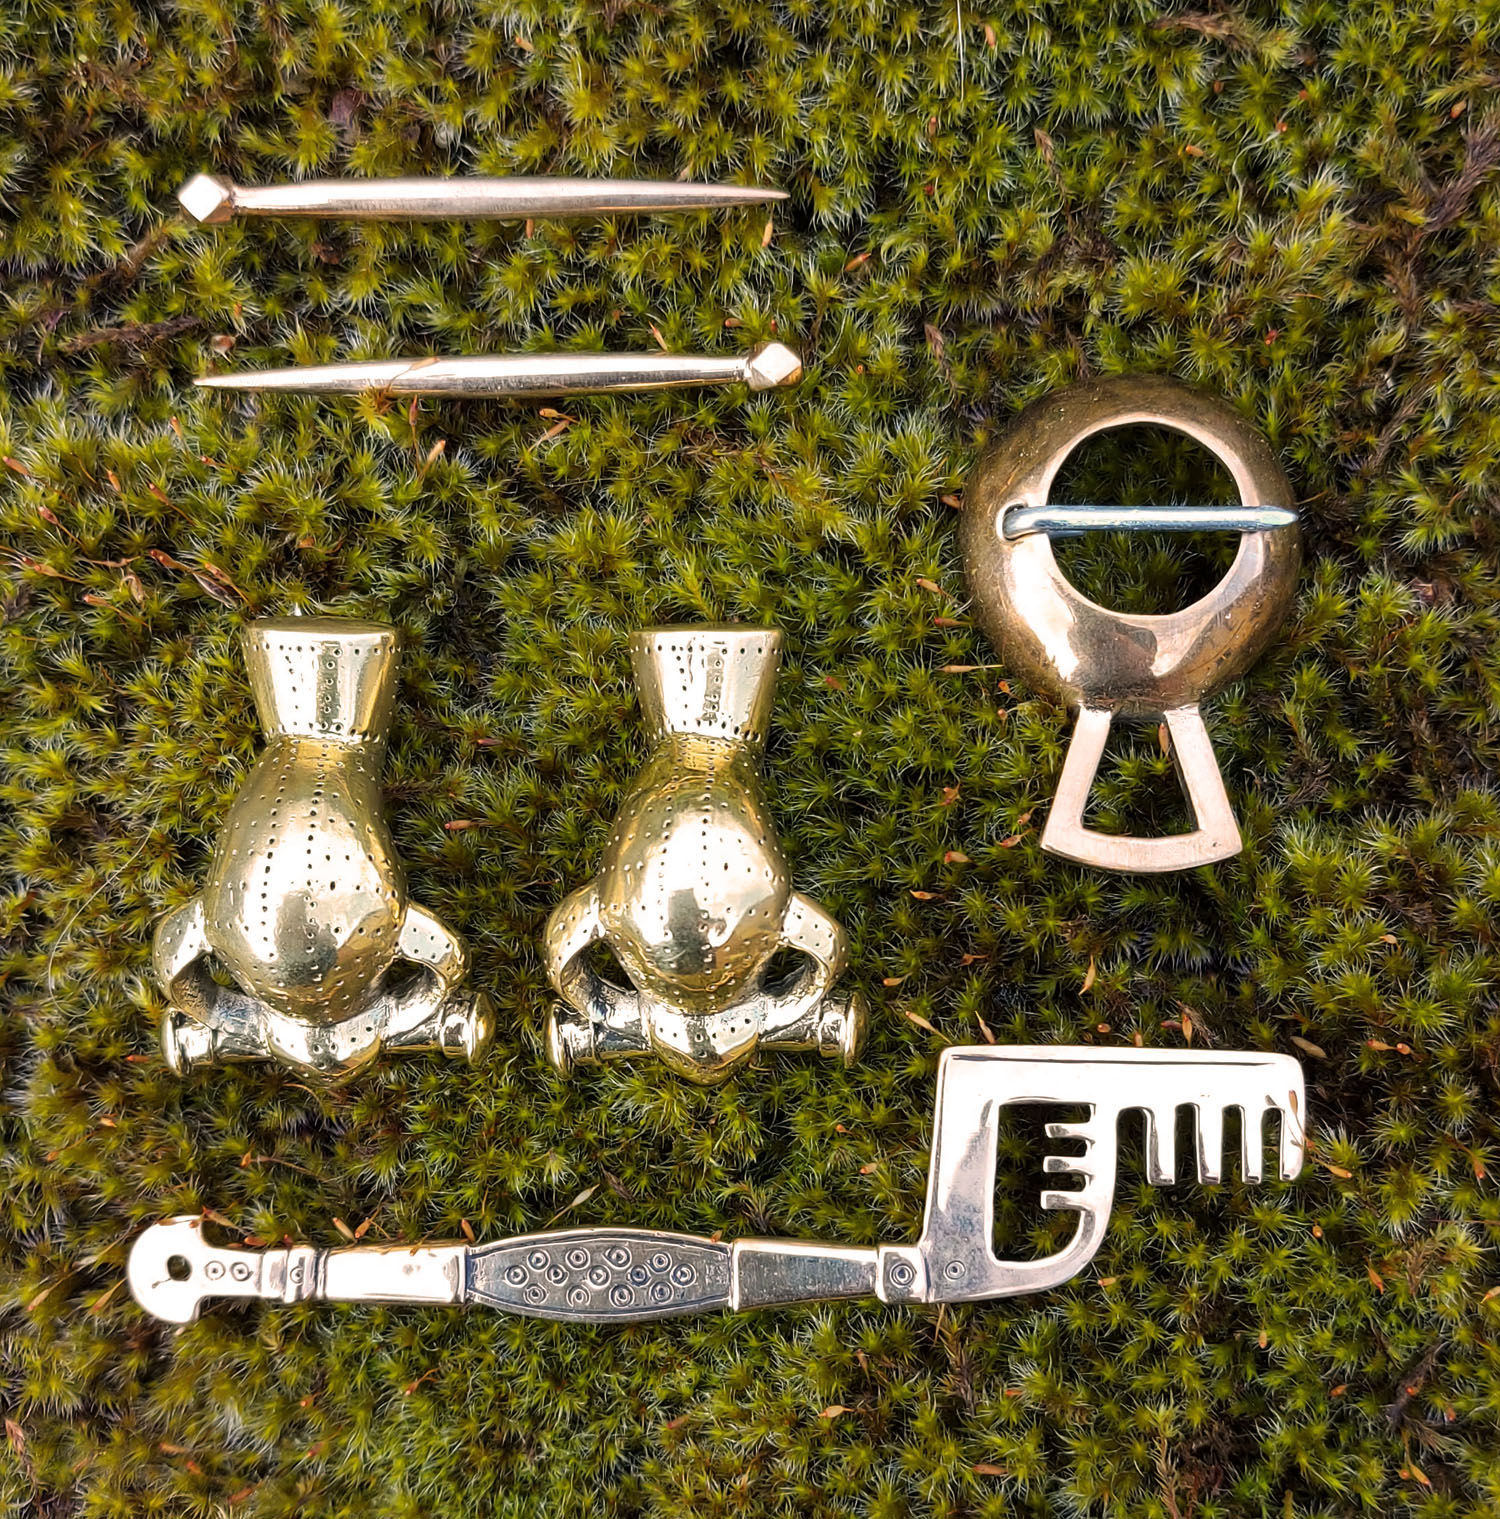 Vendel Period Accessories